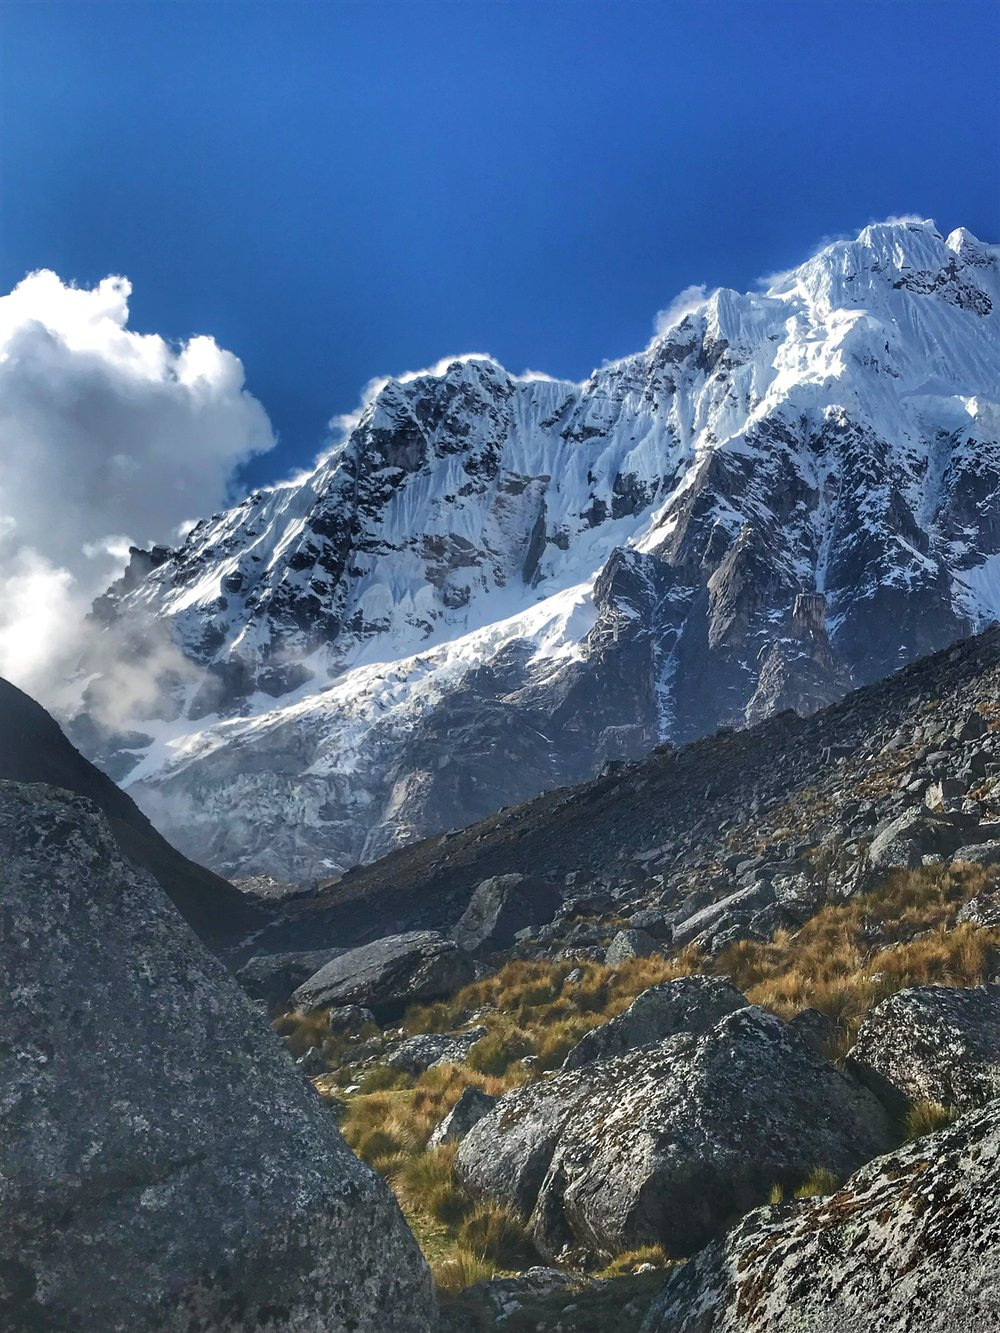 Photos that'll make you want to Hike the Salkantay Trek in Peru